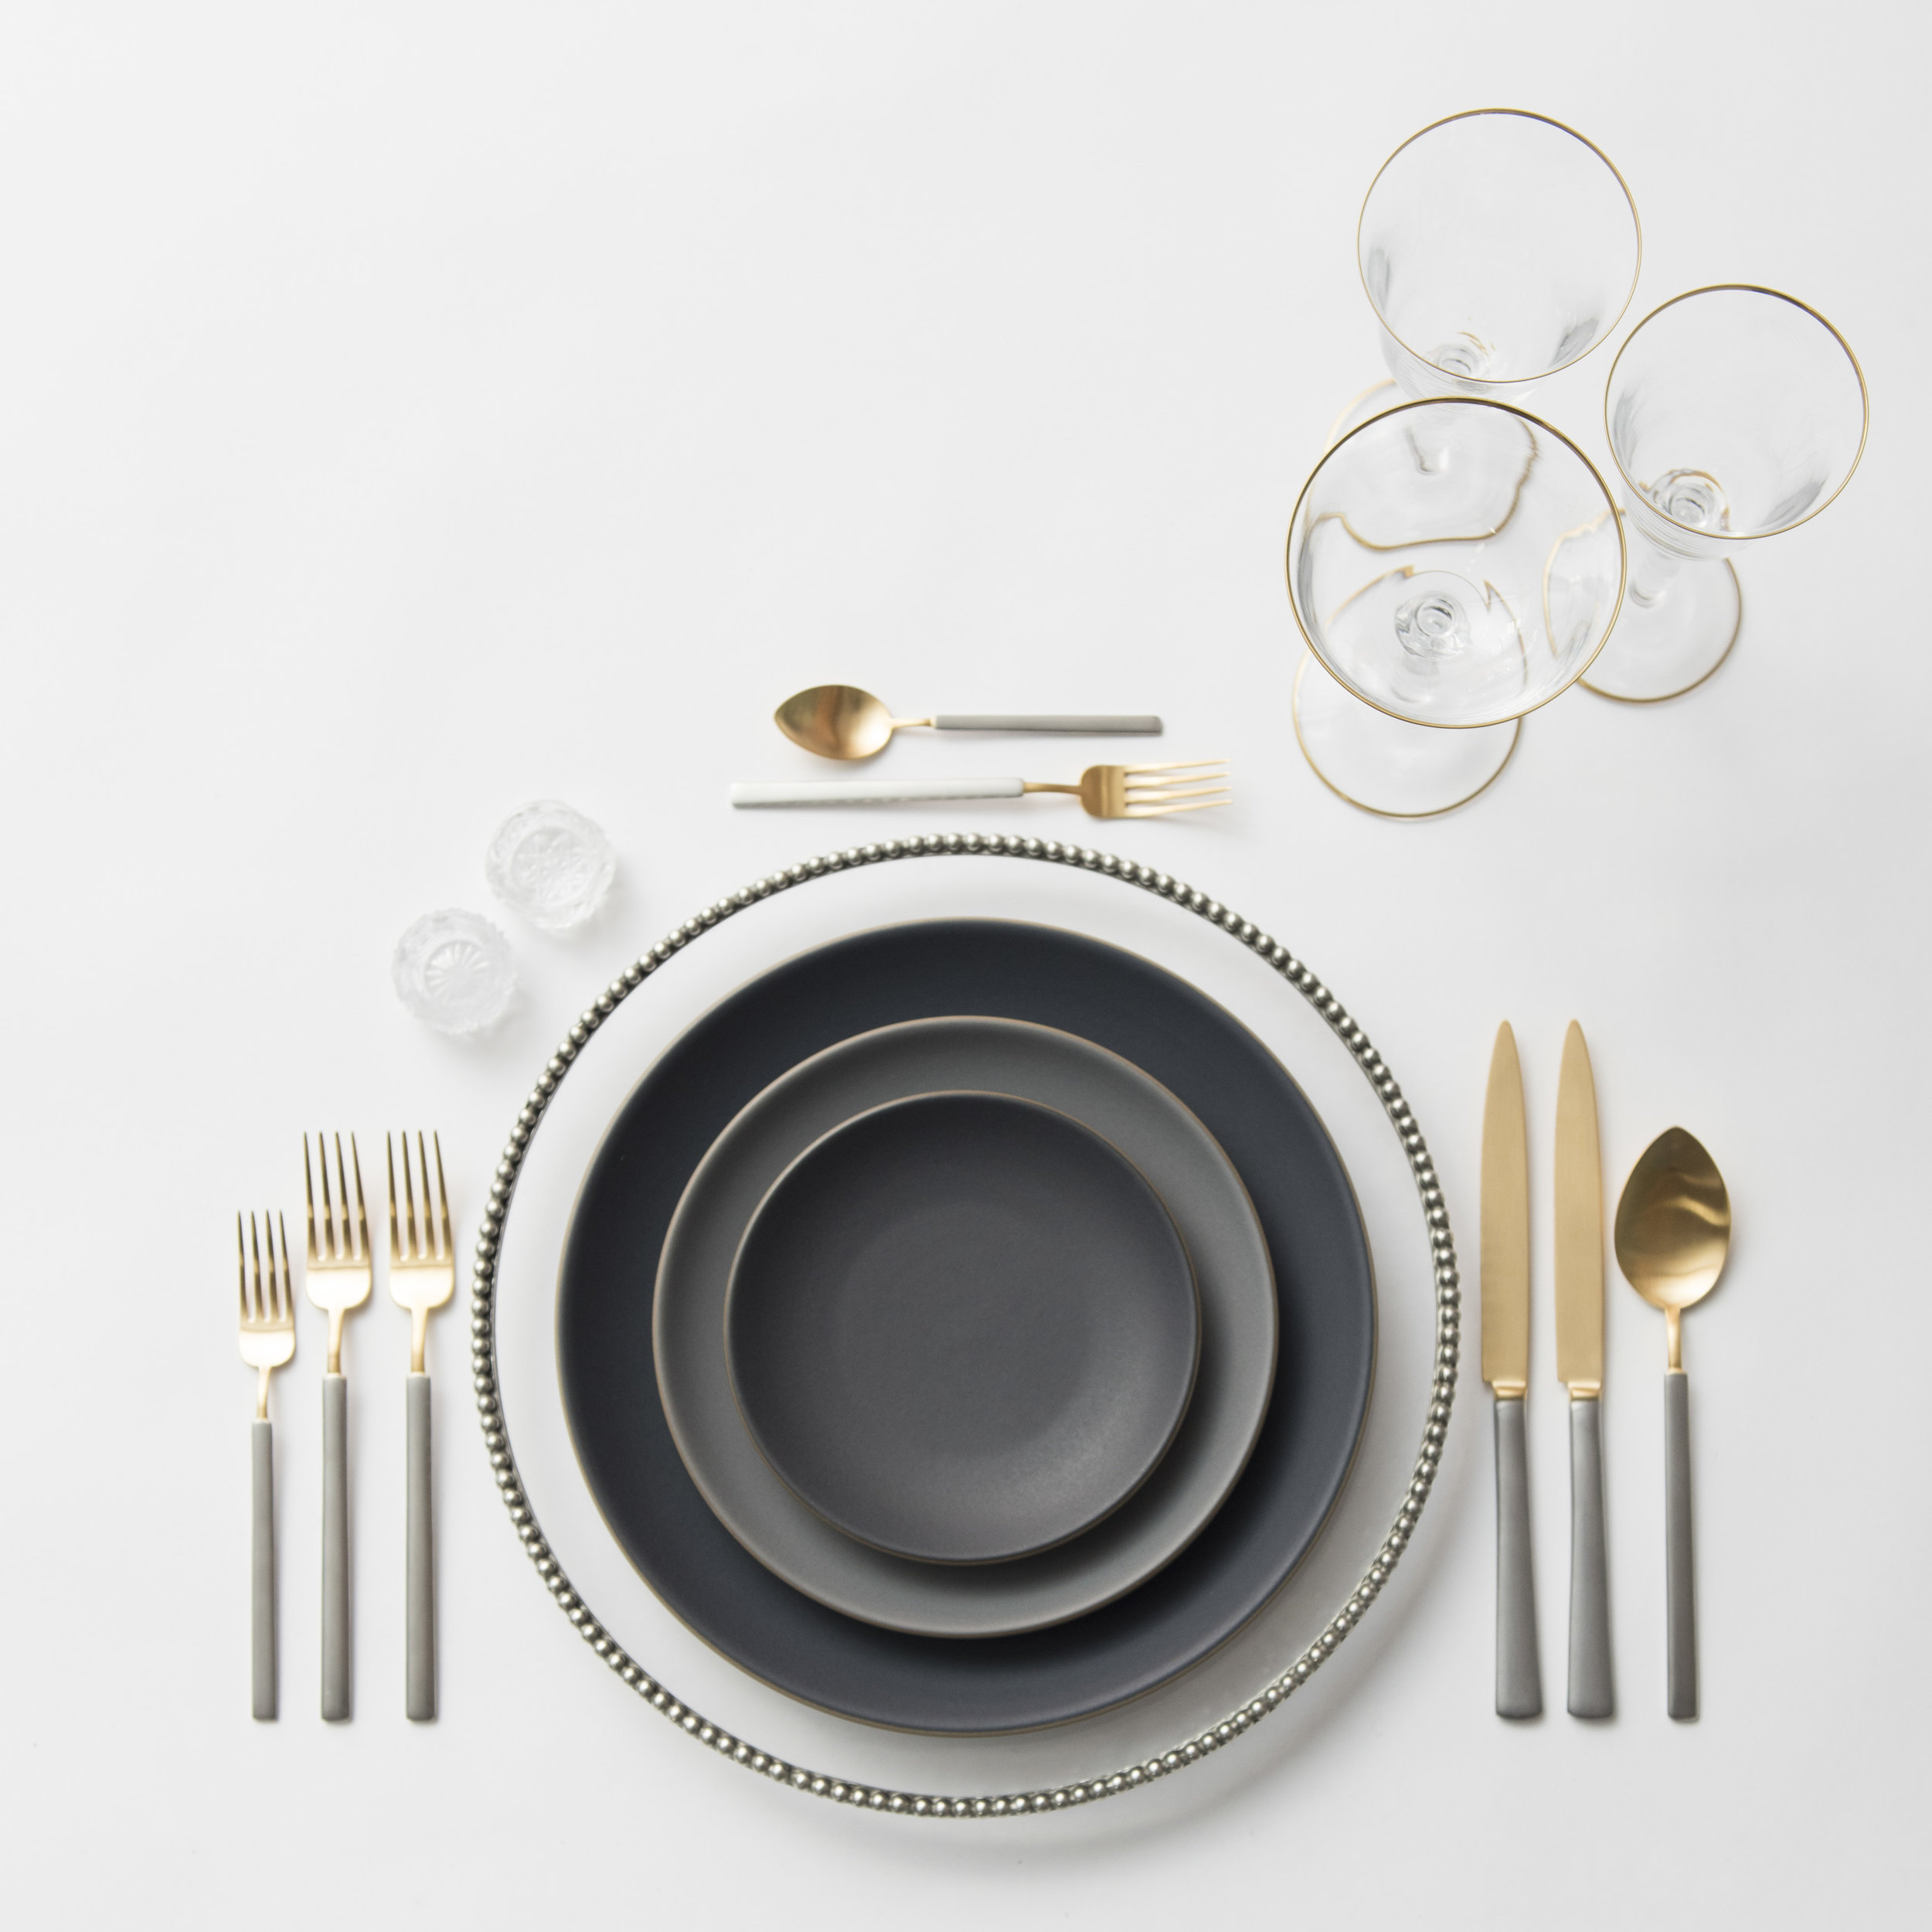 RENT: Pav é Glass Chargers in Pewter  + Heath Ceramics in Indigo/Slate + Axel Flatware in Matte 24k Gold/Silver + Chloe 24k Gold Rimmed Stemware + Antique Crystal Salt Cellars  SHOP: Chloe 24k Gold Rimmed Stemware